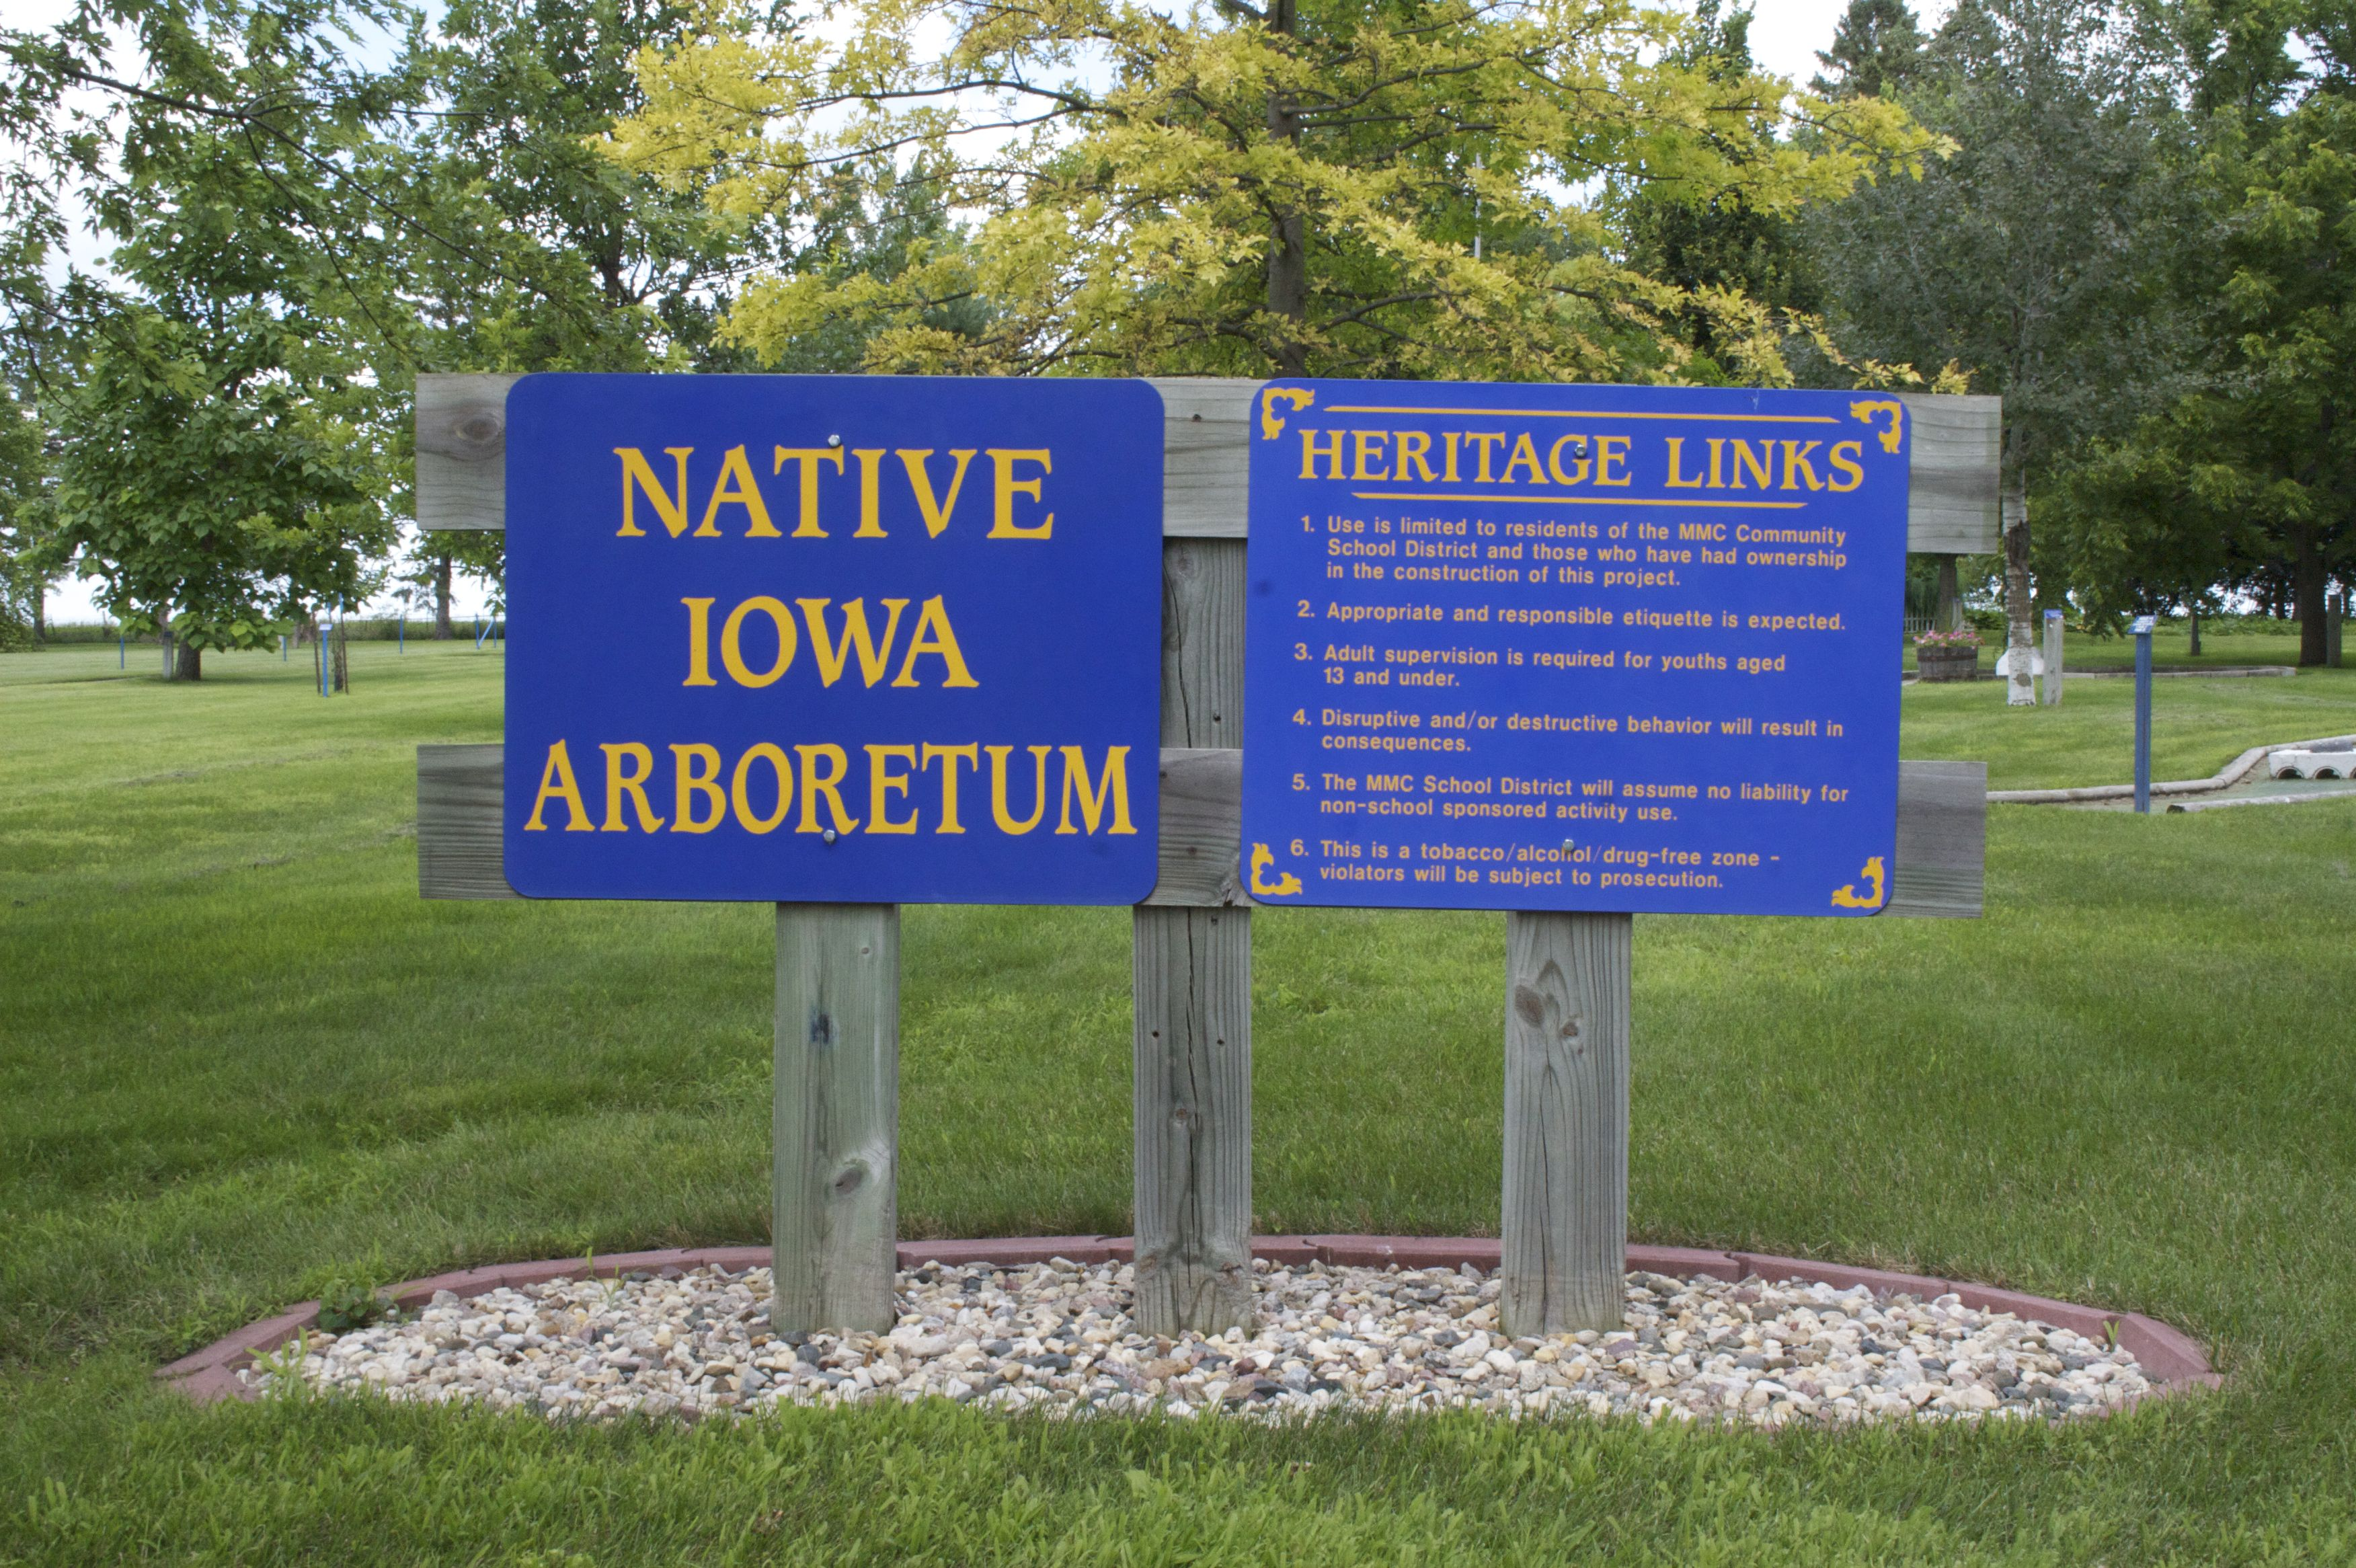 Native Iowa Arboretum